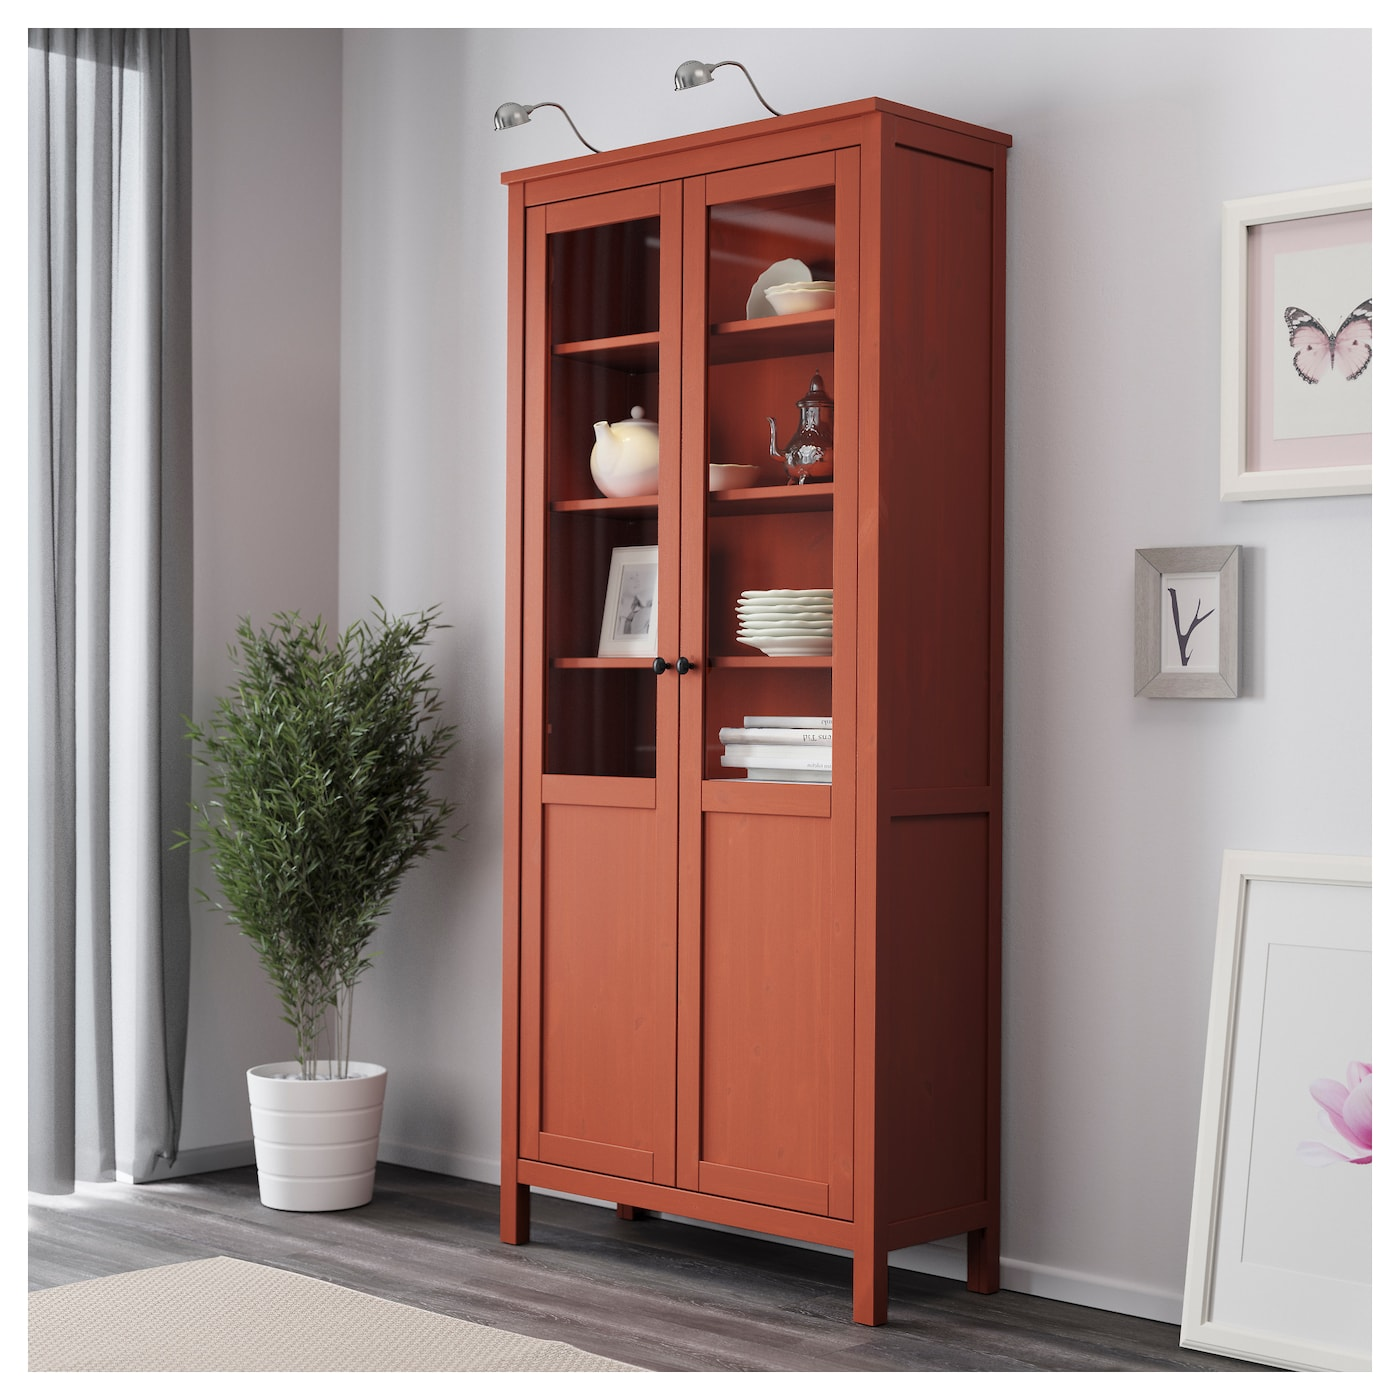 Hemnes cabinet with panel glass door red brown 90x197 cm for Ikea kitchen cabinets solid wood